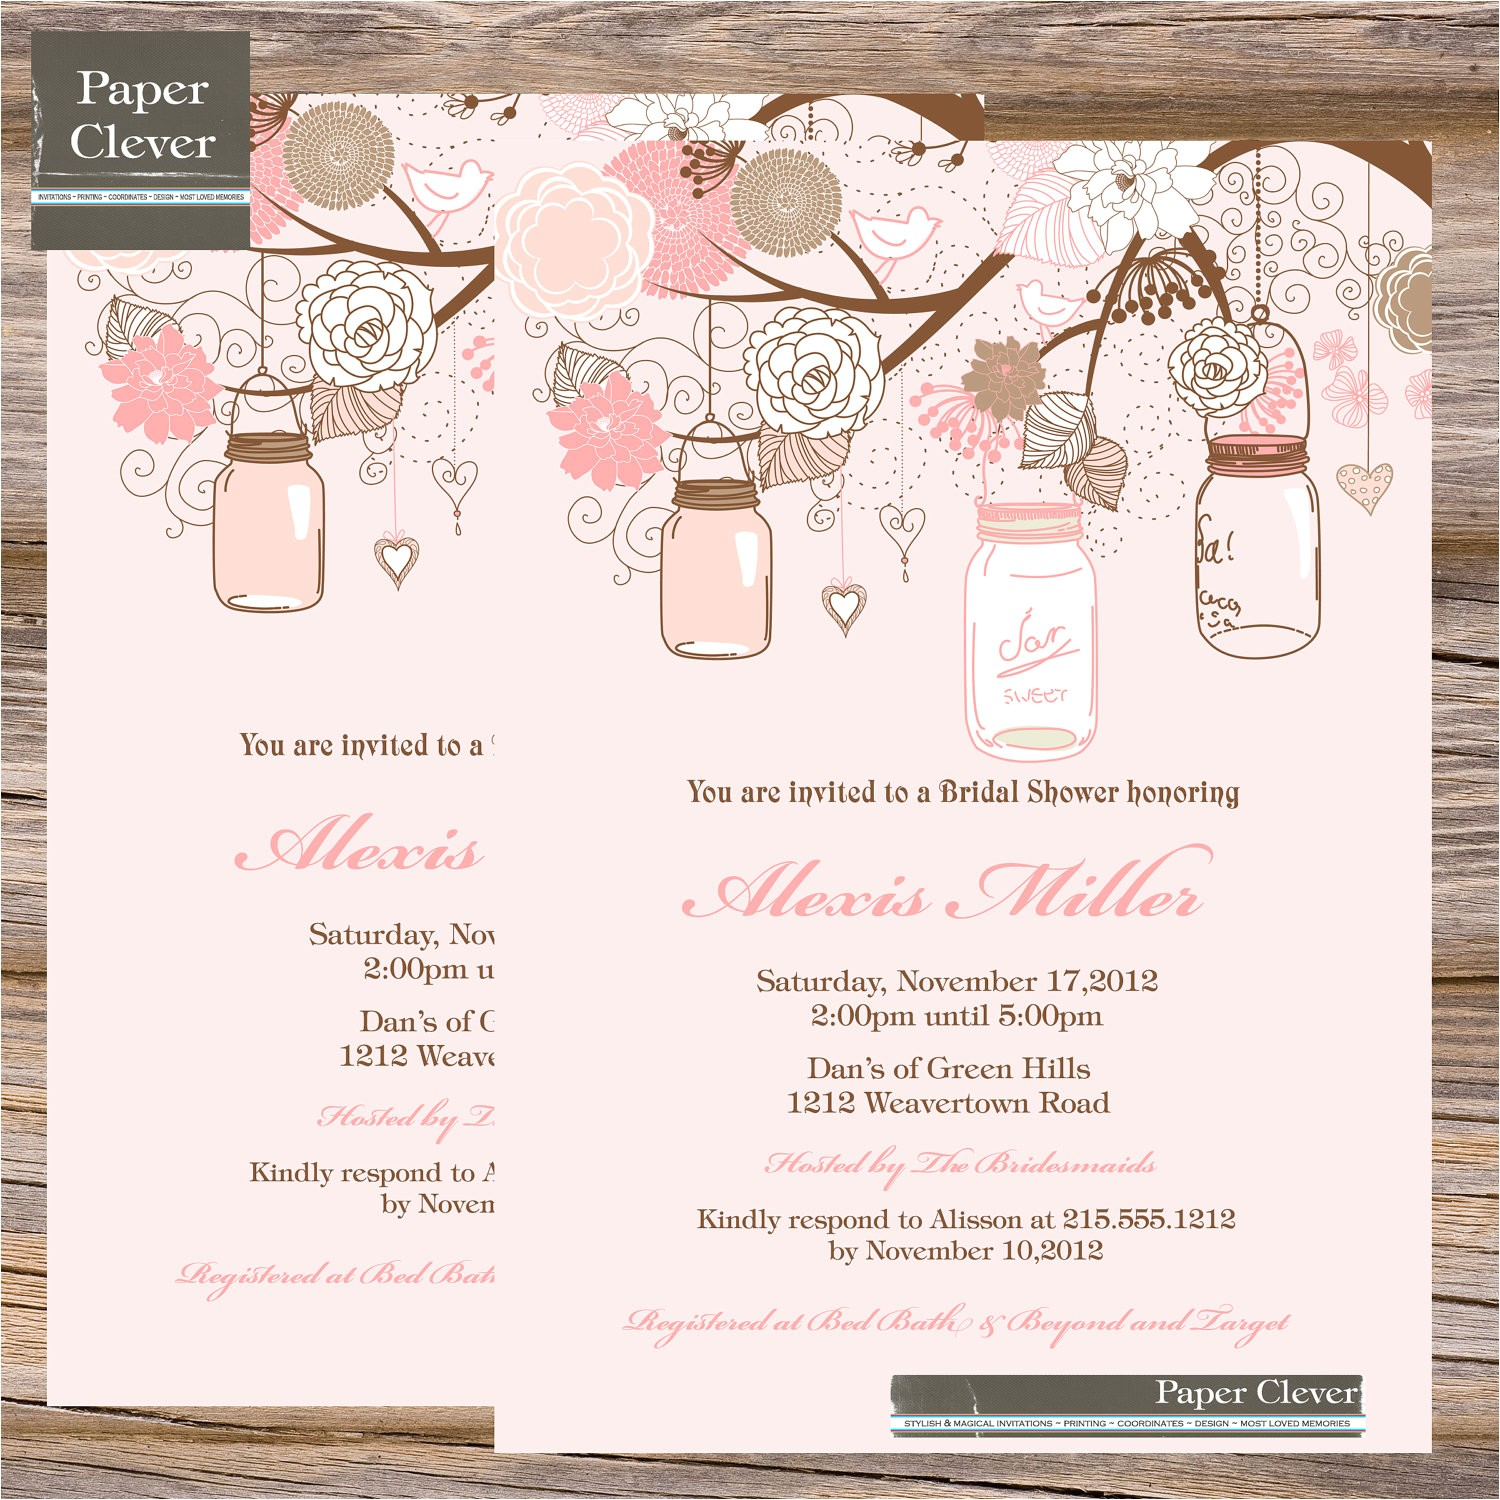 bridal party dresses wedding party dresses tremendous tea party bridal shower invitations etsy tea party bridal shower invitationstea party bridal shower invitations templatestea party bridal s